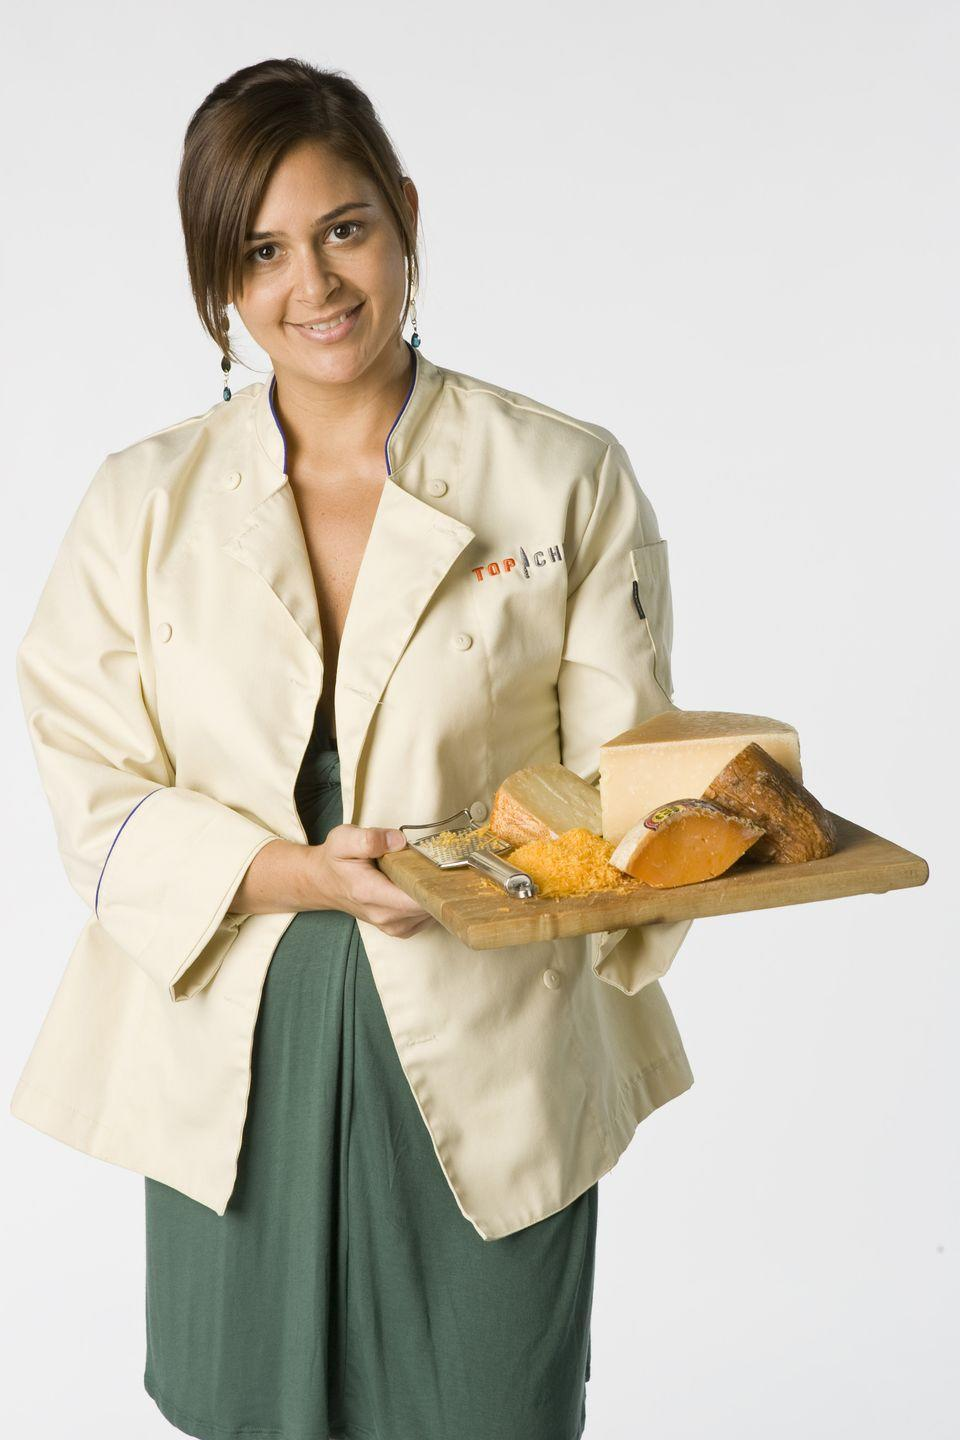 <p>After attending the French Culinary Institute in New York City, Antonia Lofaso worked in several restaurants, including the Los Angeles-based Spago. She entered the <em>Top Chef </em>competition in season four, where she earned fourth place. She later competed in the all-star competition, where she came in third. </p>